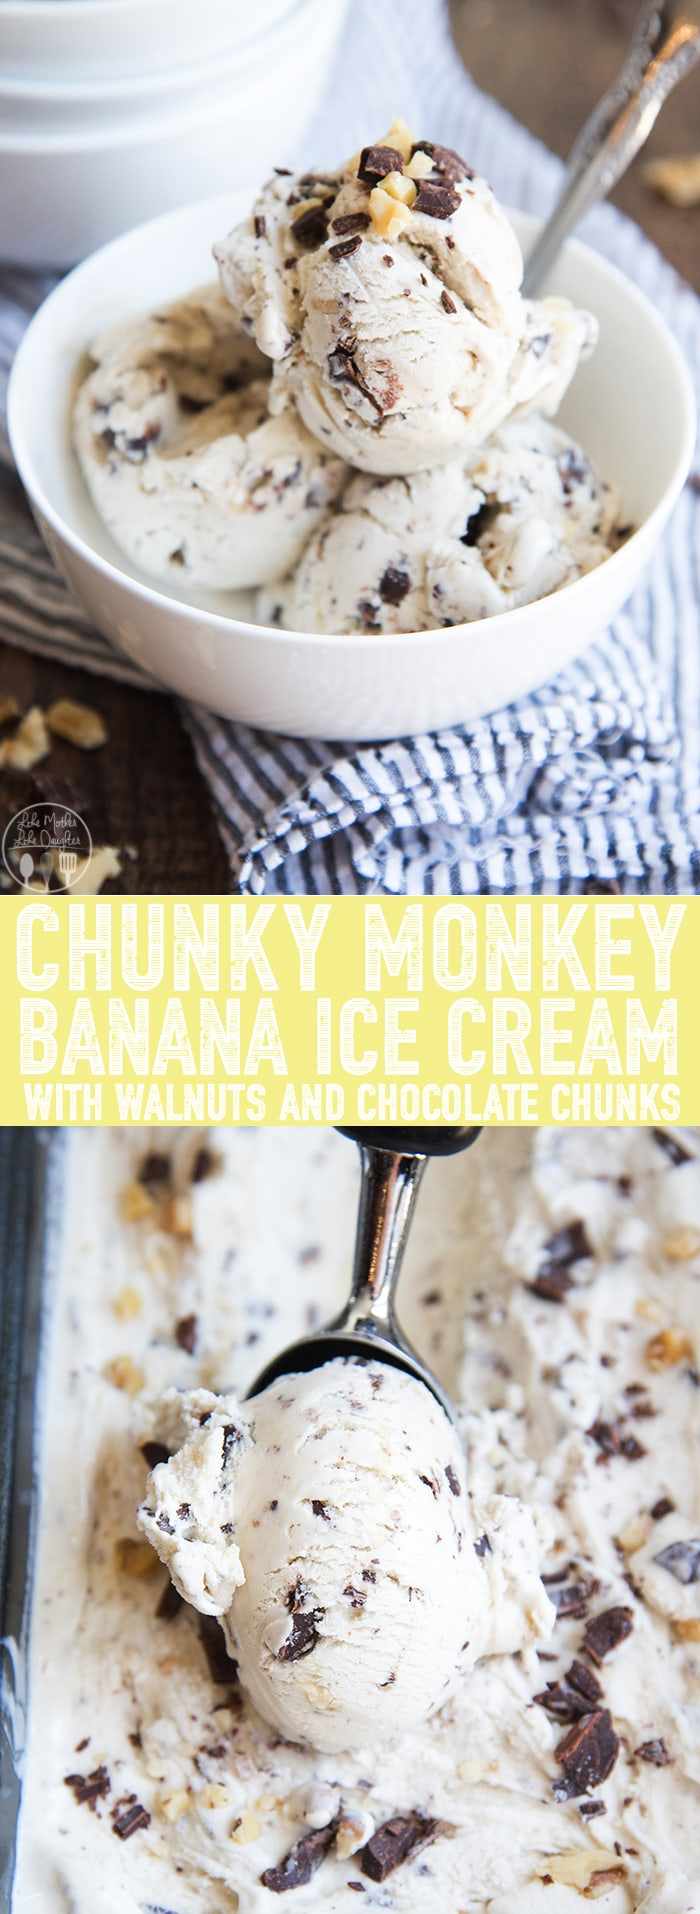 Homemade Chunky Monkey Ice Cream is a creamy banana ice cream full of chopped walnuts and chocolate, that tastes just like Ben and Jerry's!